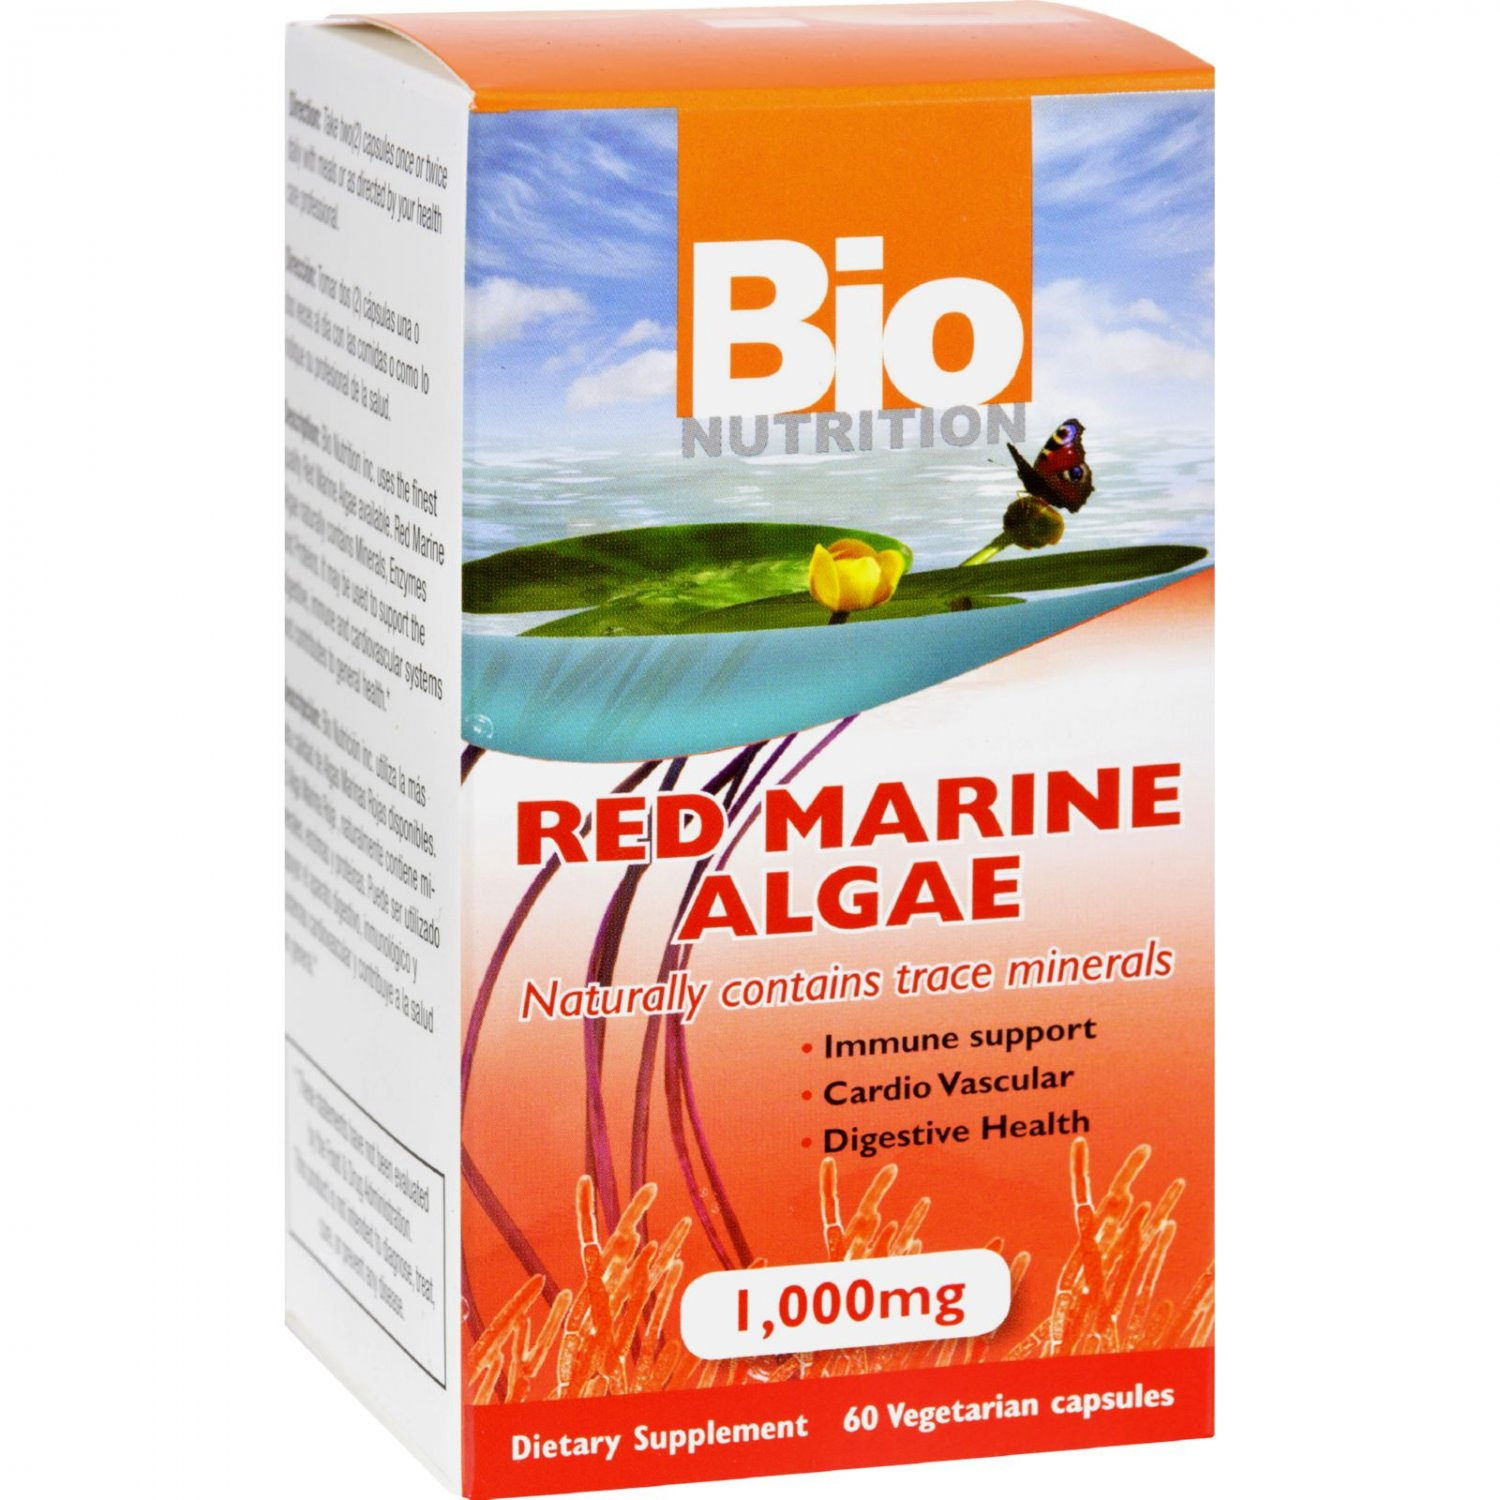 Bio Nutrition Red Marine Algae - 1000 mg - 60 Vegetarian Capsules